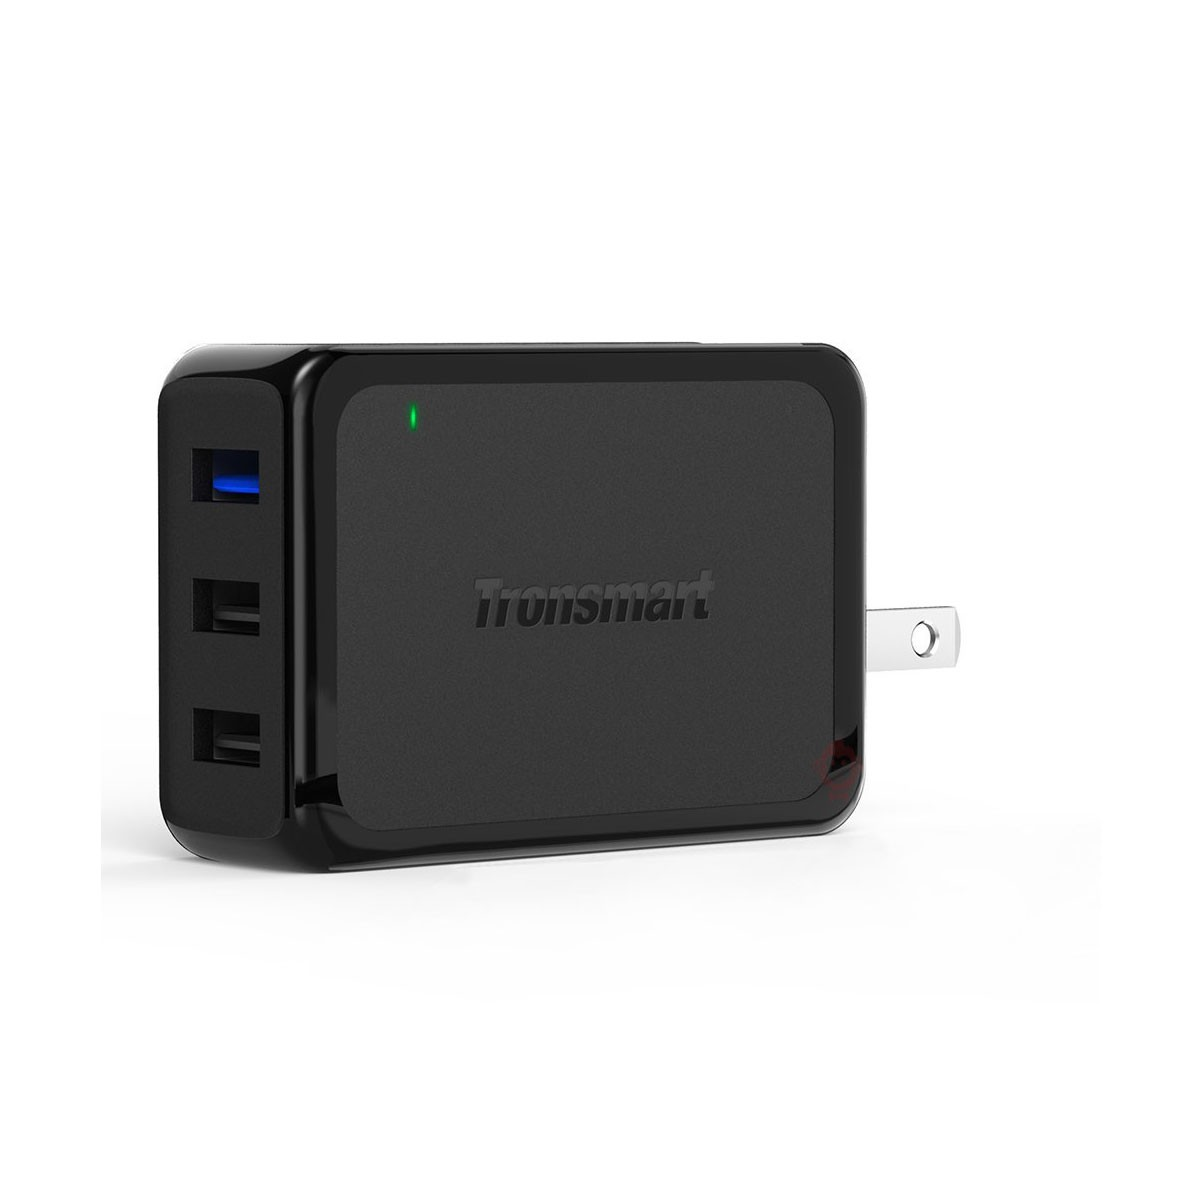 Tronsmart W3pta Qc 30 Voltiq Charger Home Shopping Quick Charge 42w 3 Port Qualcomm Certified Dockstronsmart 3port Rapid Wall Image